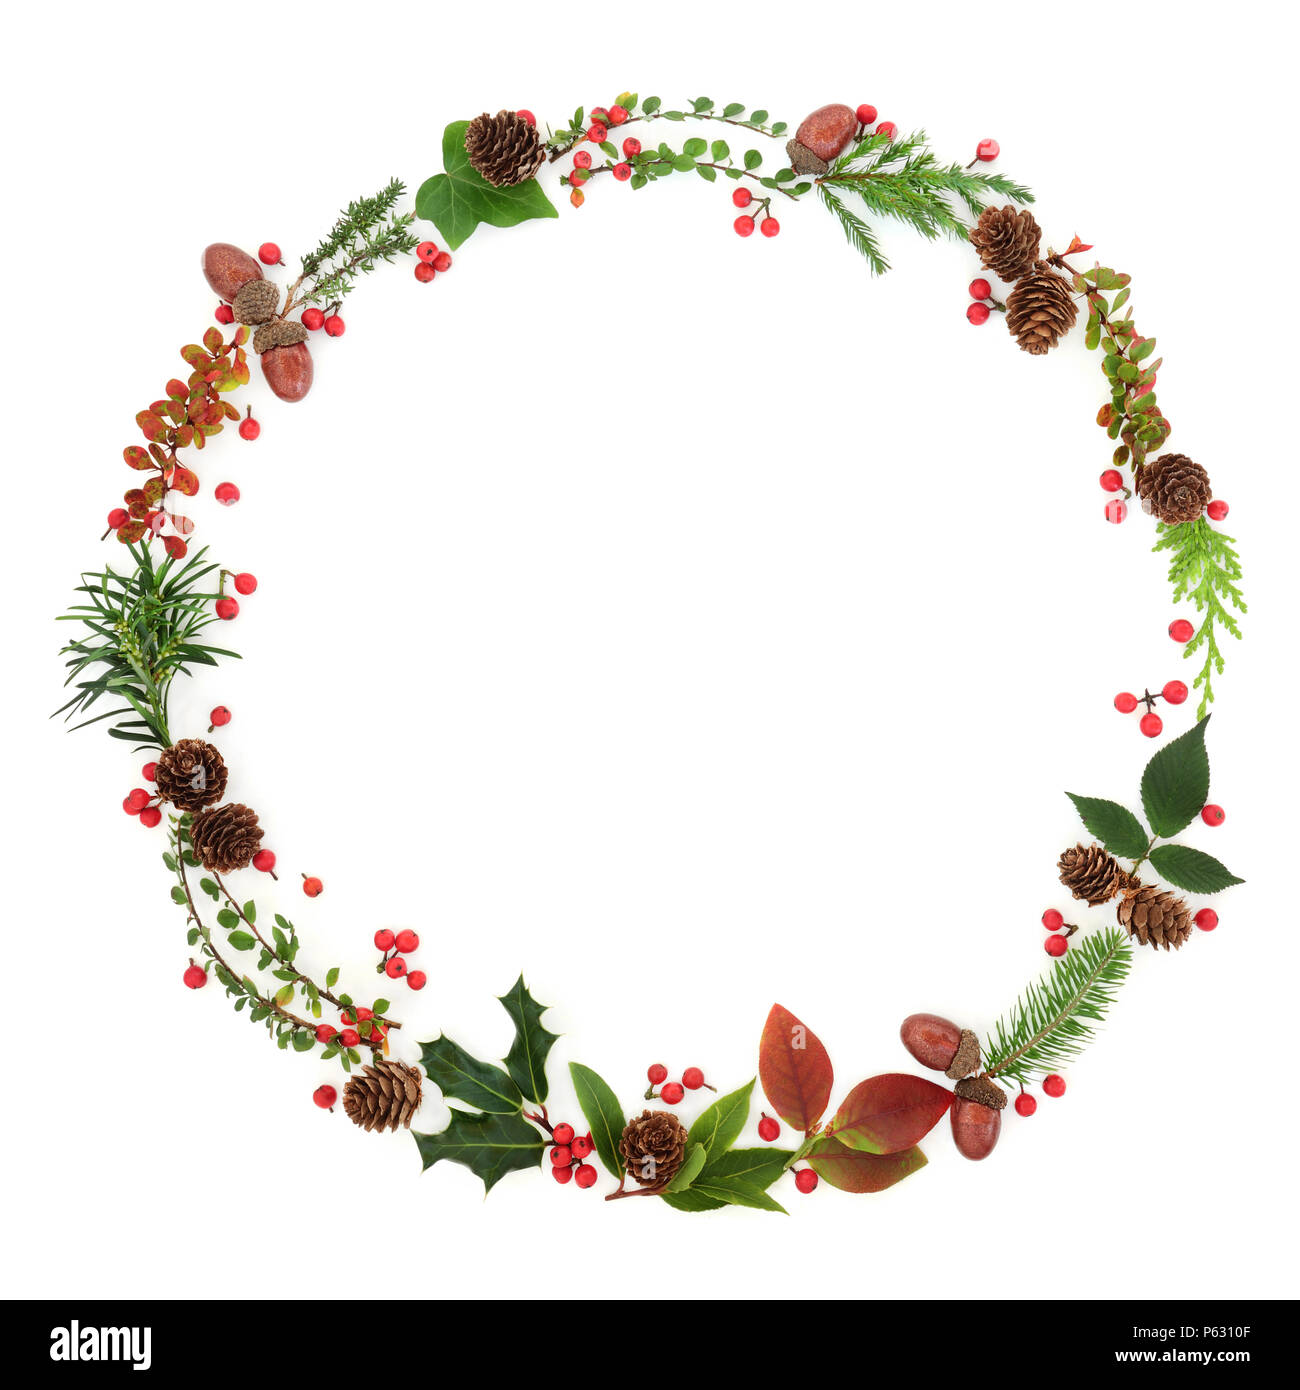 Natural Winter And Christmas Wreath Garland With Leaf Sprigs Holly